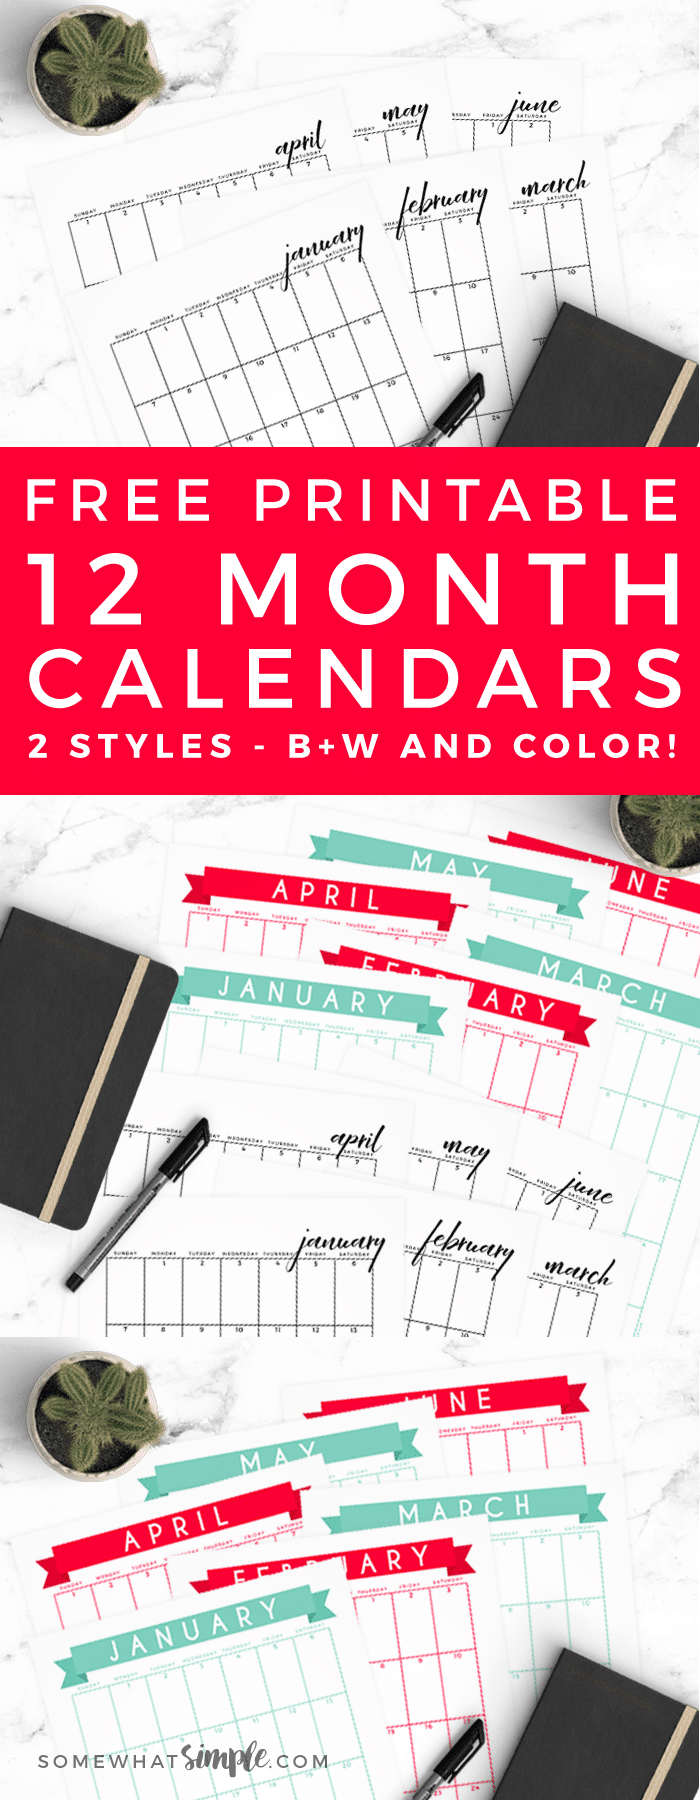 Time to start the new year with a fresh start and new calendar! Our free 2018 calendar template has a simple design that fits perfectly in a notebook, so you can start off the new year fashionably organized!